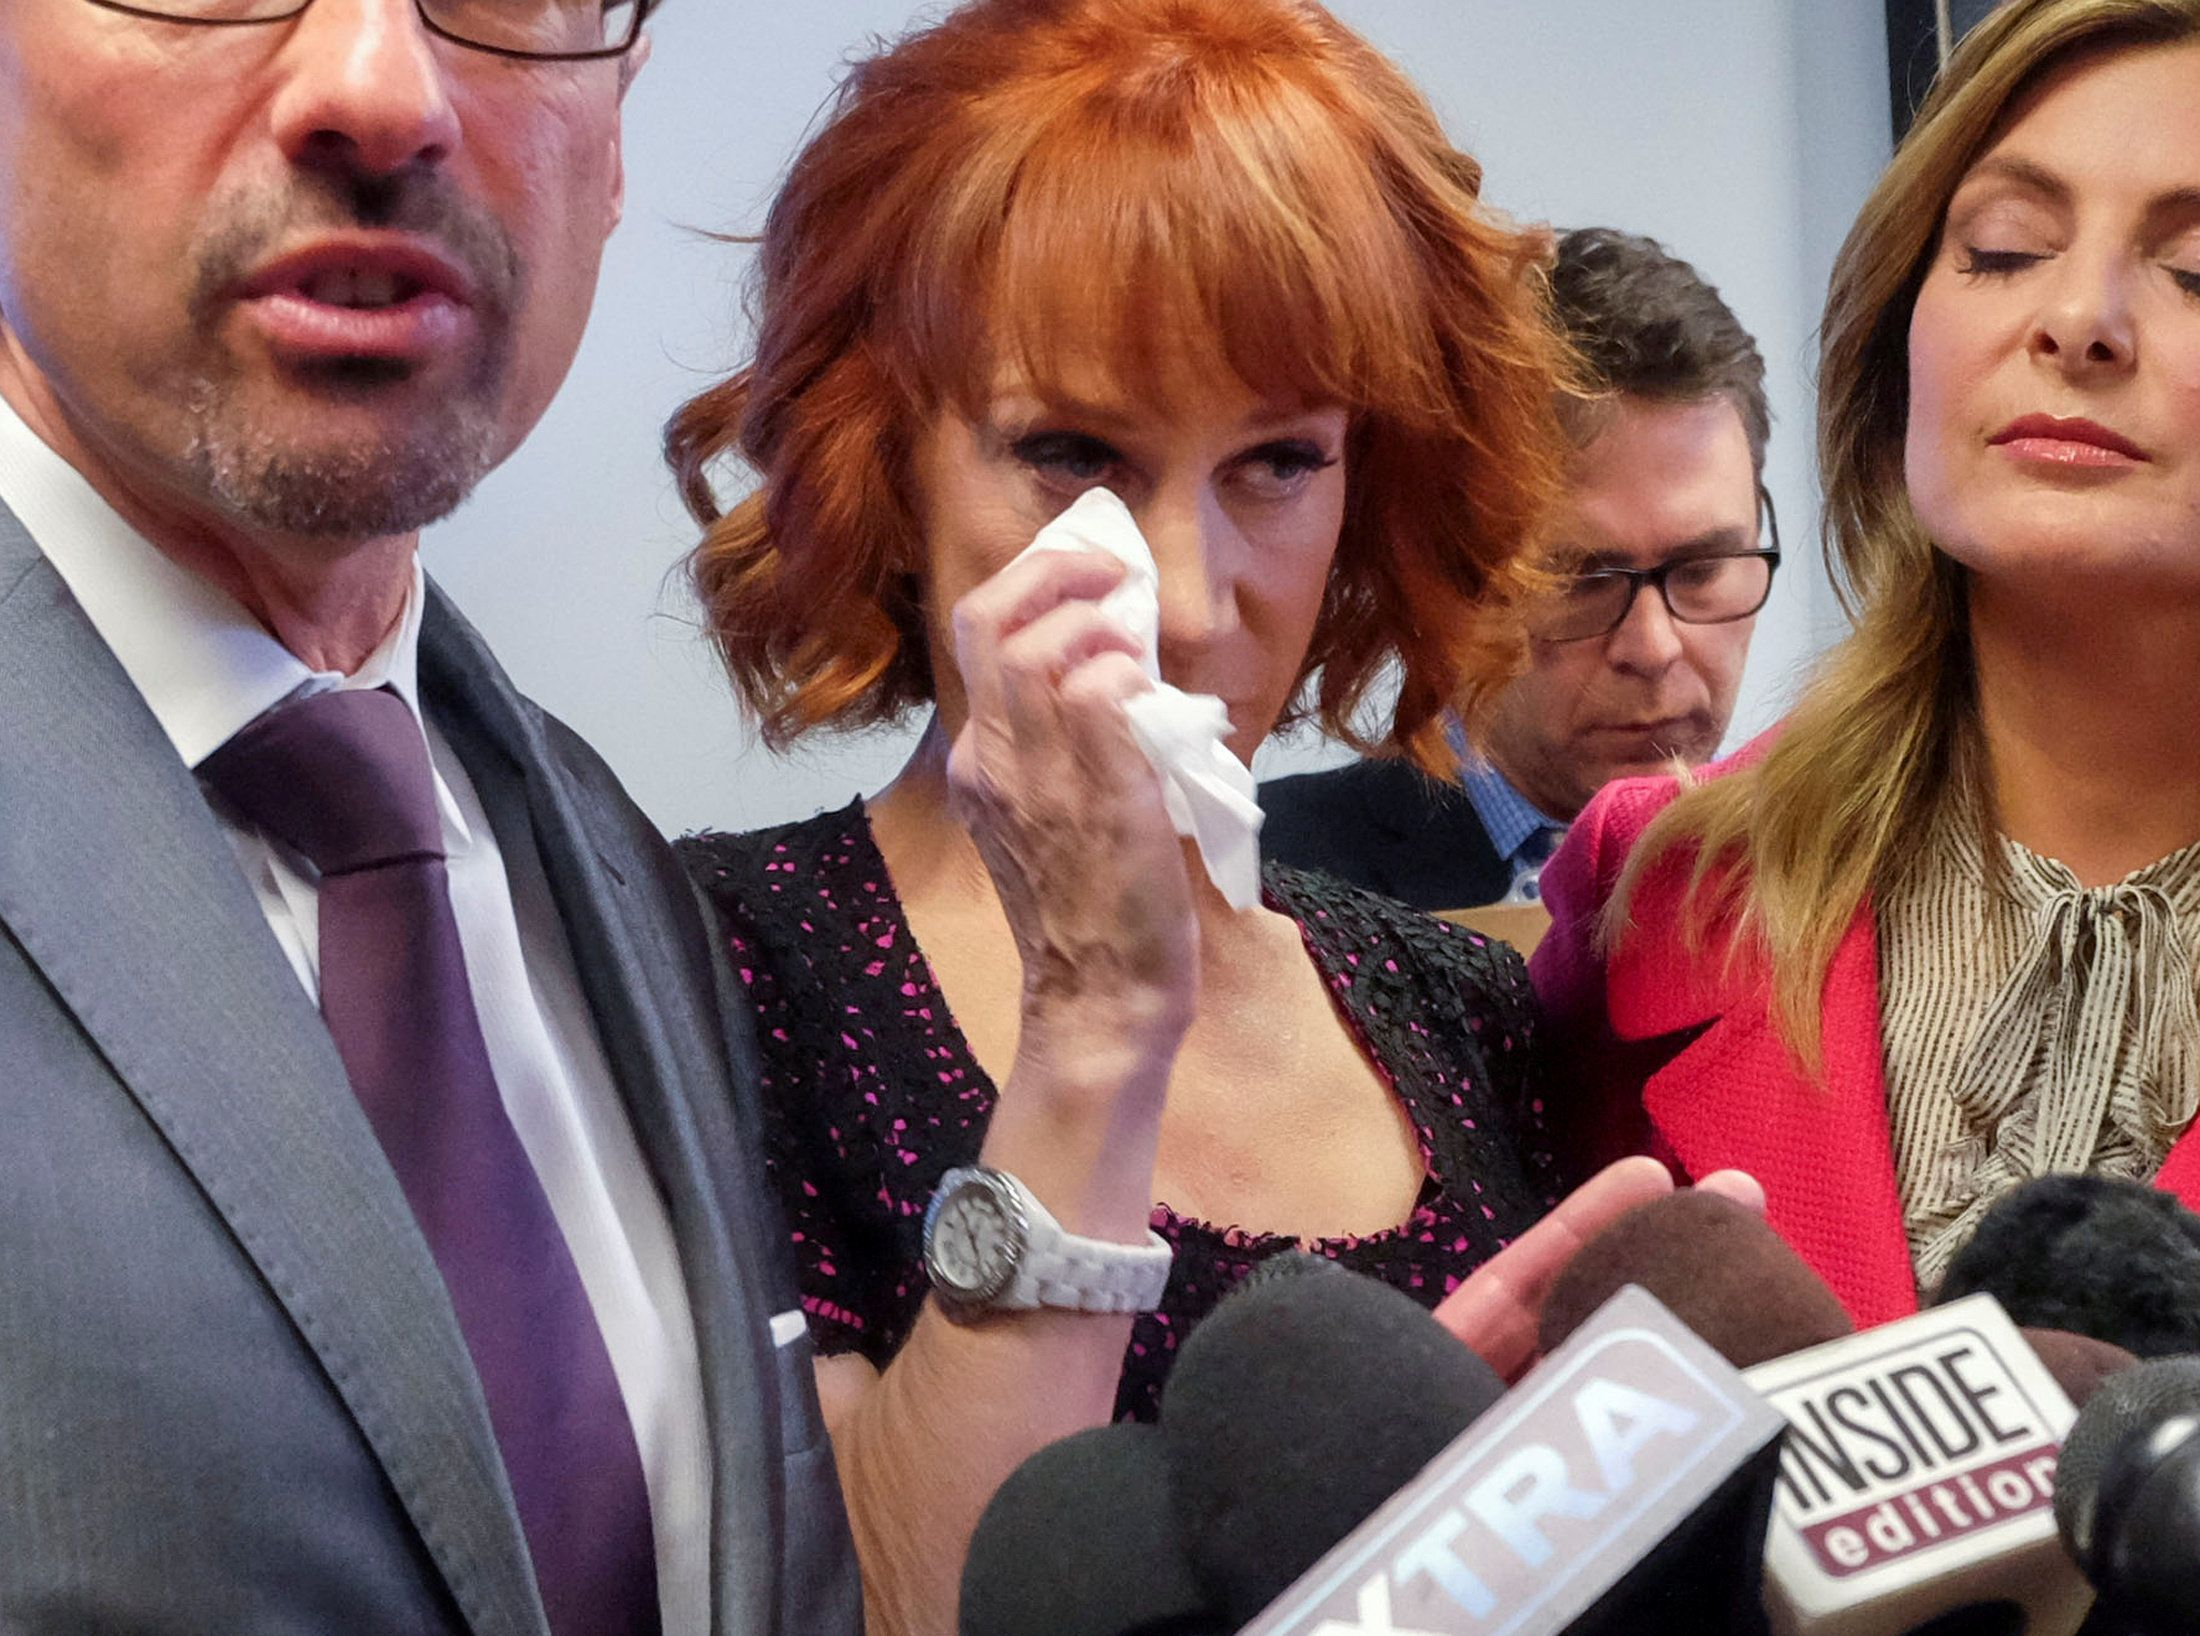 Comedian Kathy Griffin wipes her eyes as her criminal attorney Dmitry Gorin (L) speaks at a news conference in Woodland Hills, Los Angeles, California, U.S., June 2, 2017. At right is attorney Lisa Bloom. REUTERS/Ringo Chiu